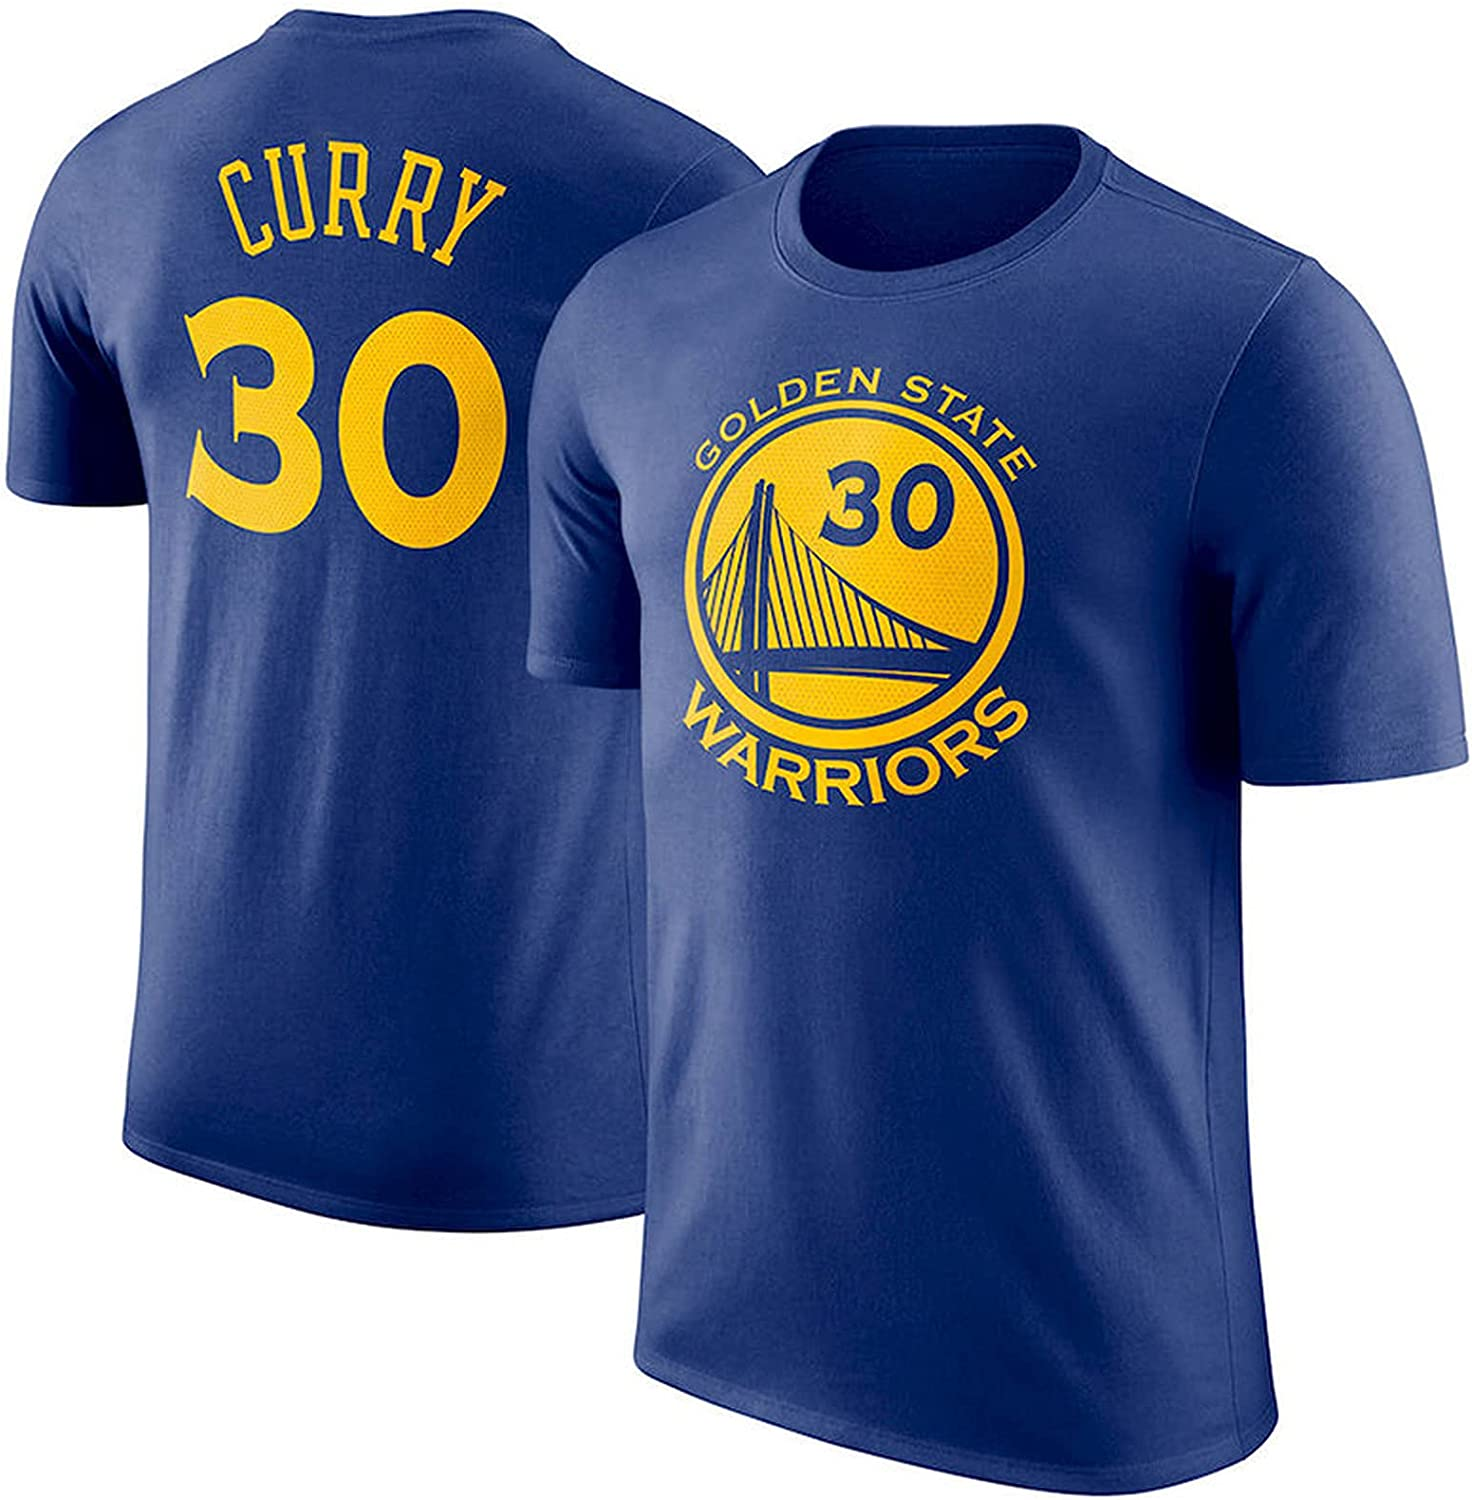 Golden State Warriors Stephen Curry # 30 Mens Basketball T-Shirt,Classic Commemorative Short-Sleeved Basketball Jersey ,Suitable for Basketball Fans Party and Outdoor Sports